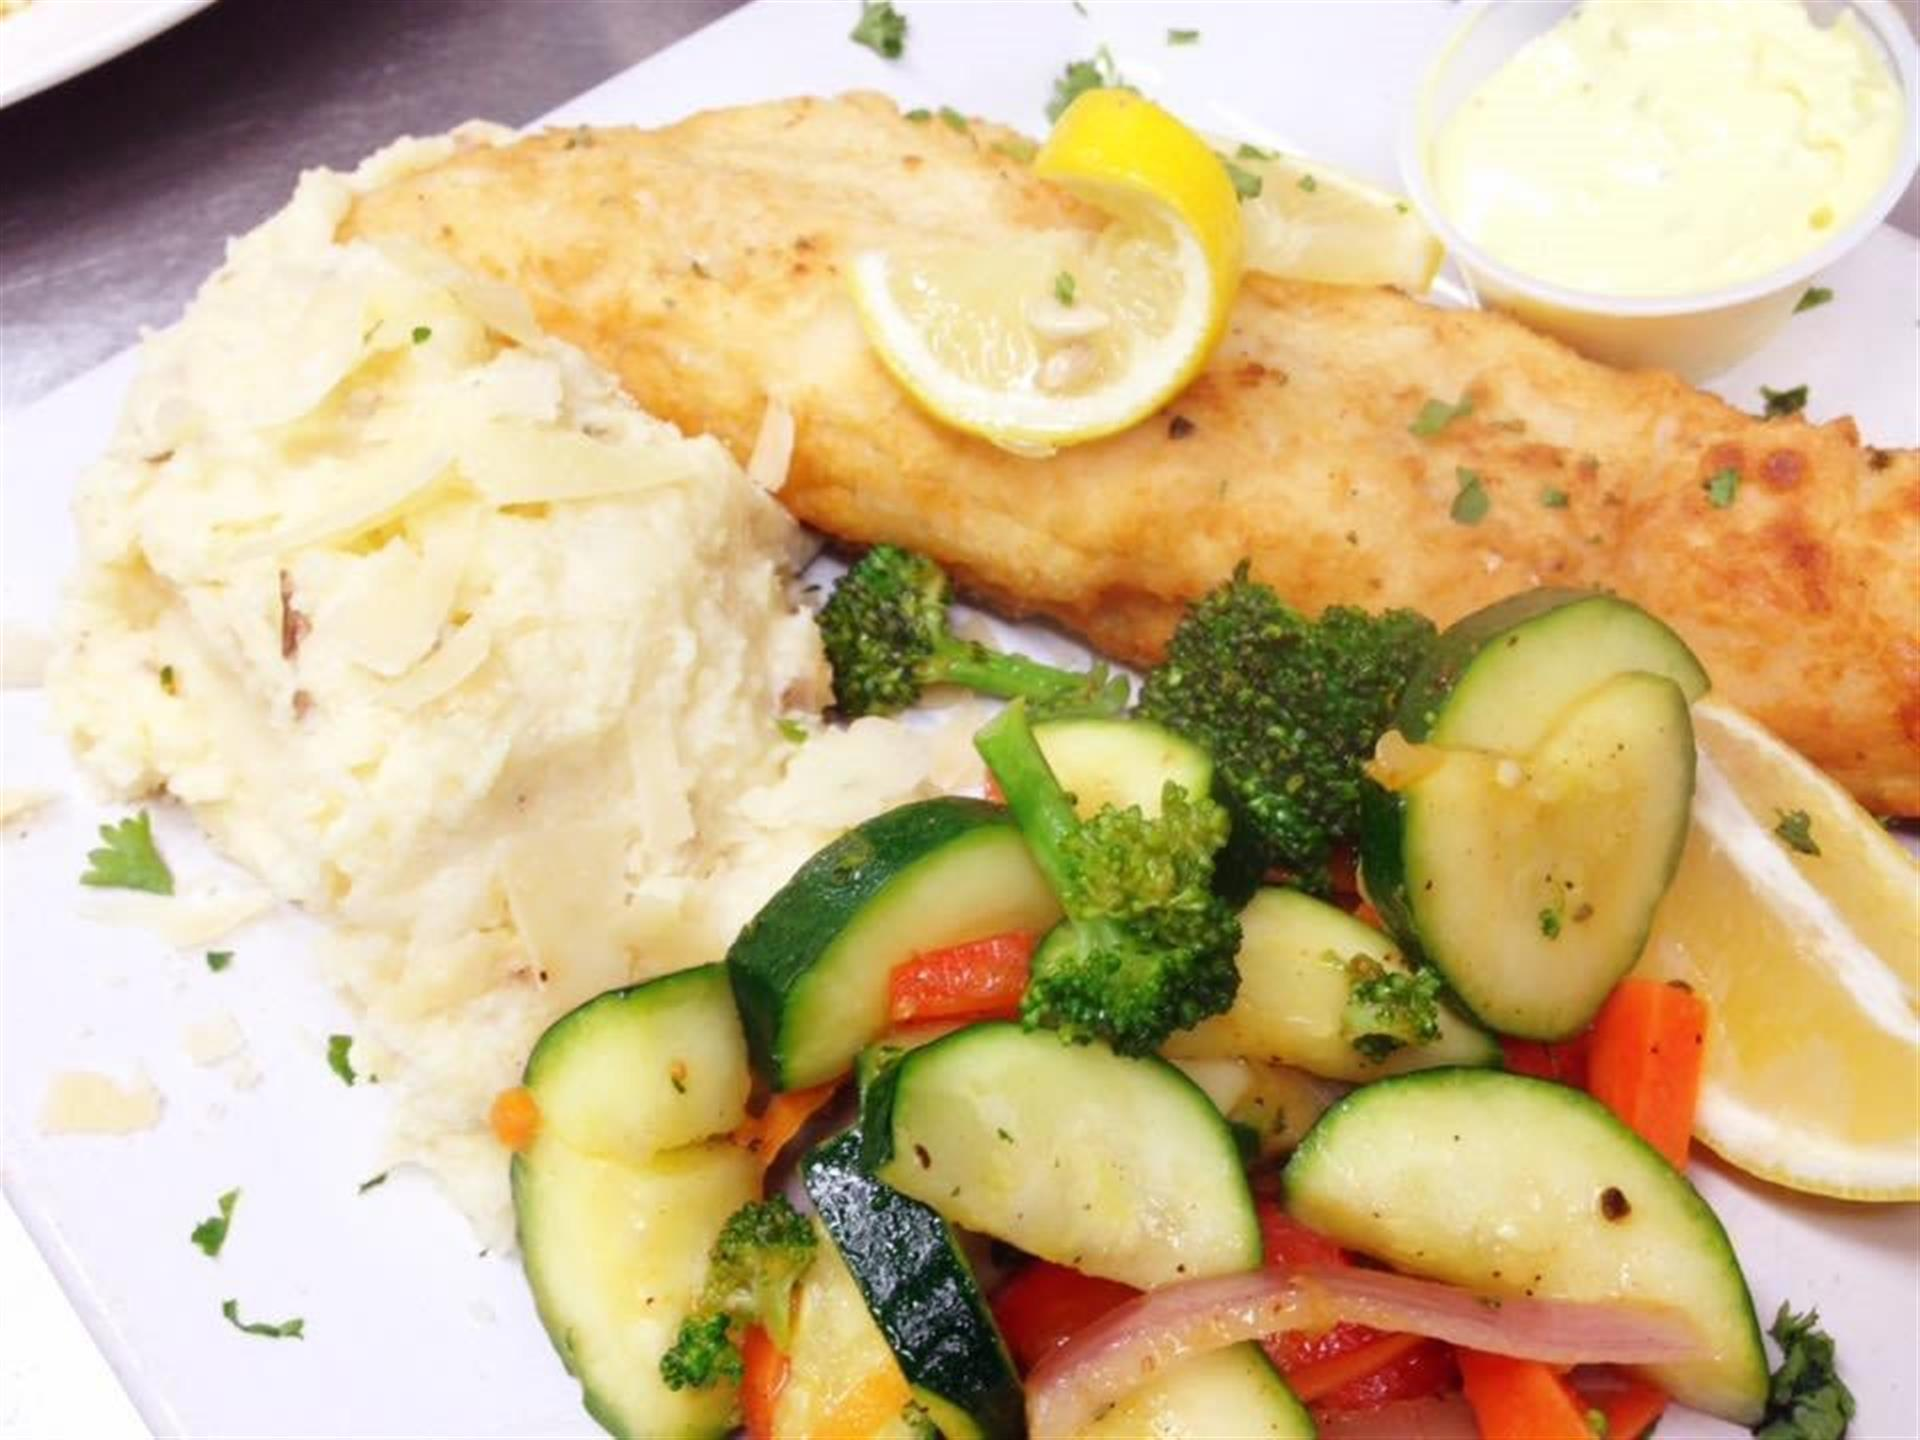 Mediterranean Walleye. Lake Erie Walleye filet dusted in Sicilian flour and pan fried in olive oil. Served with Asiago whipped potatoes and sautéed vegetables